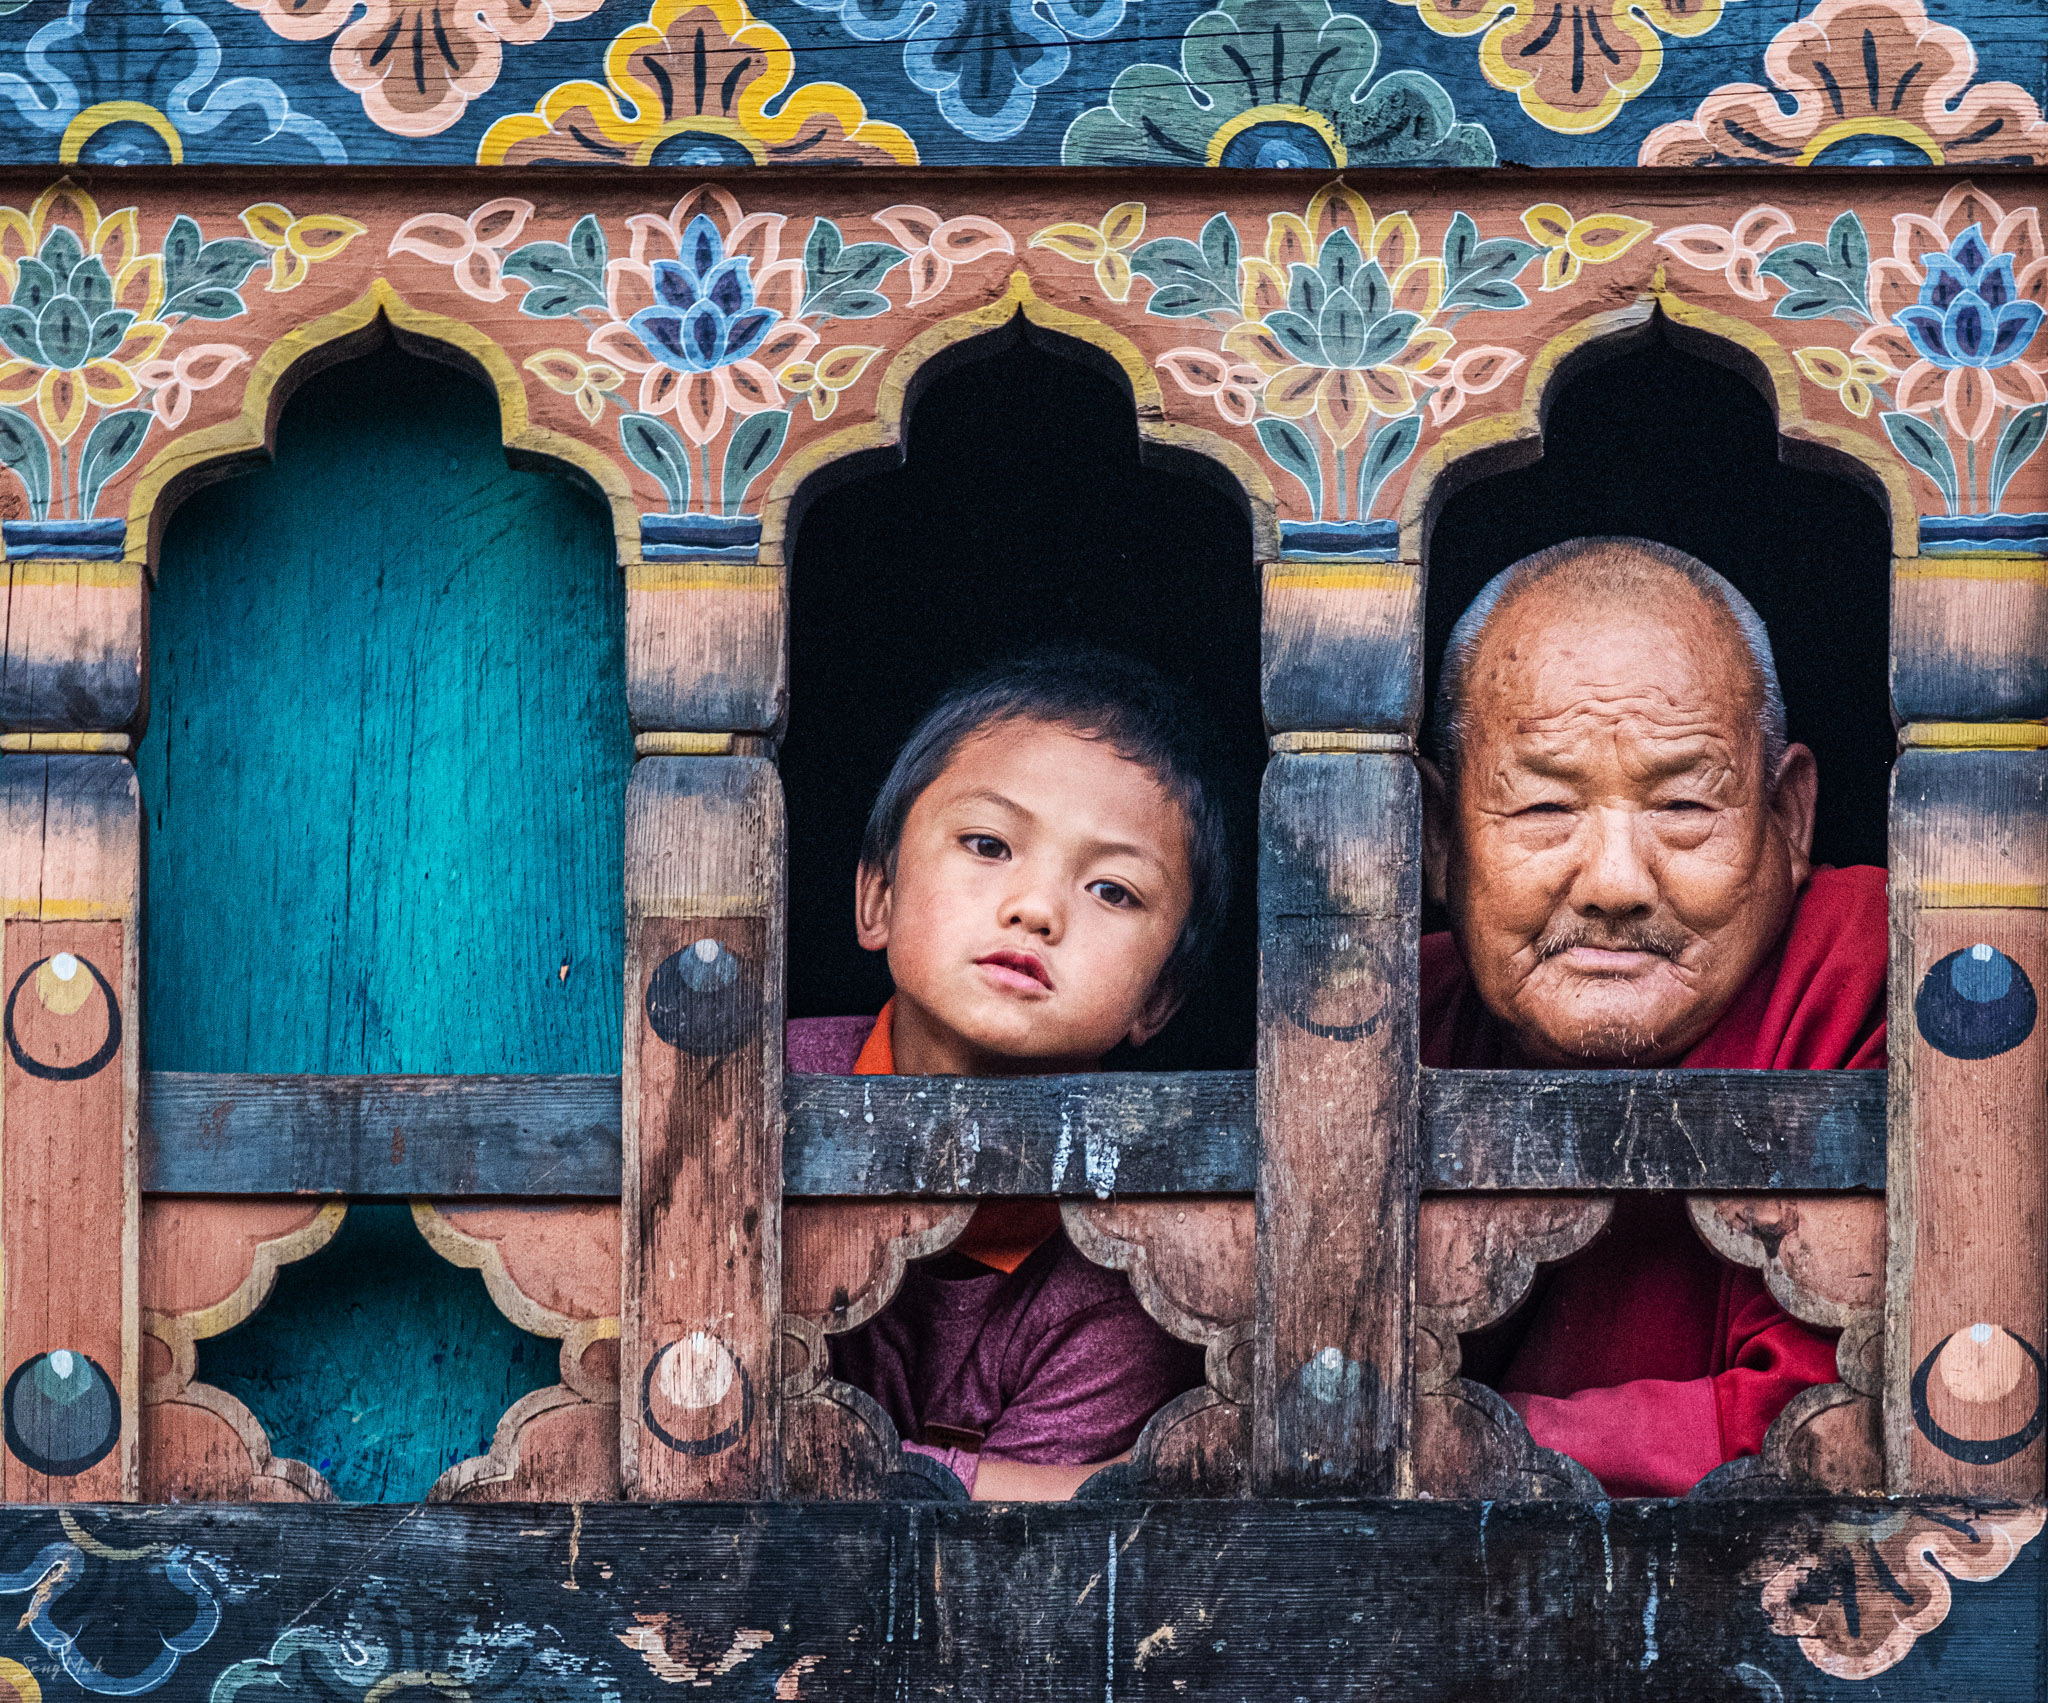 Bhutan - faces in a window